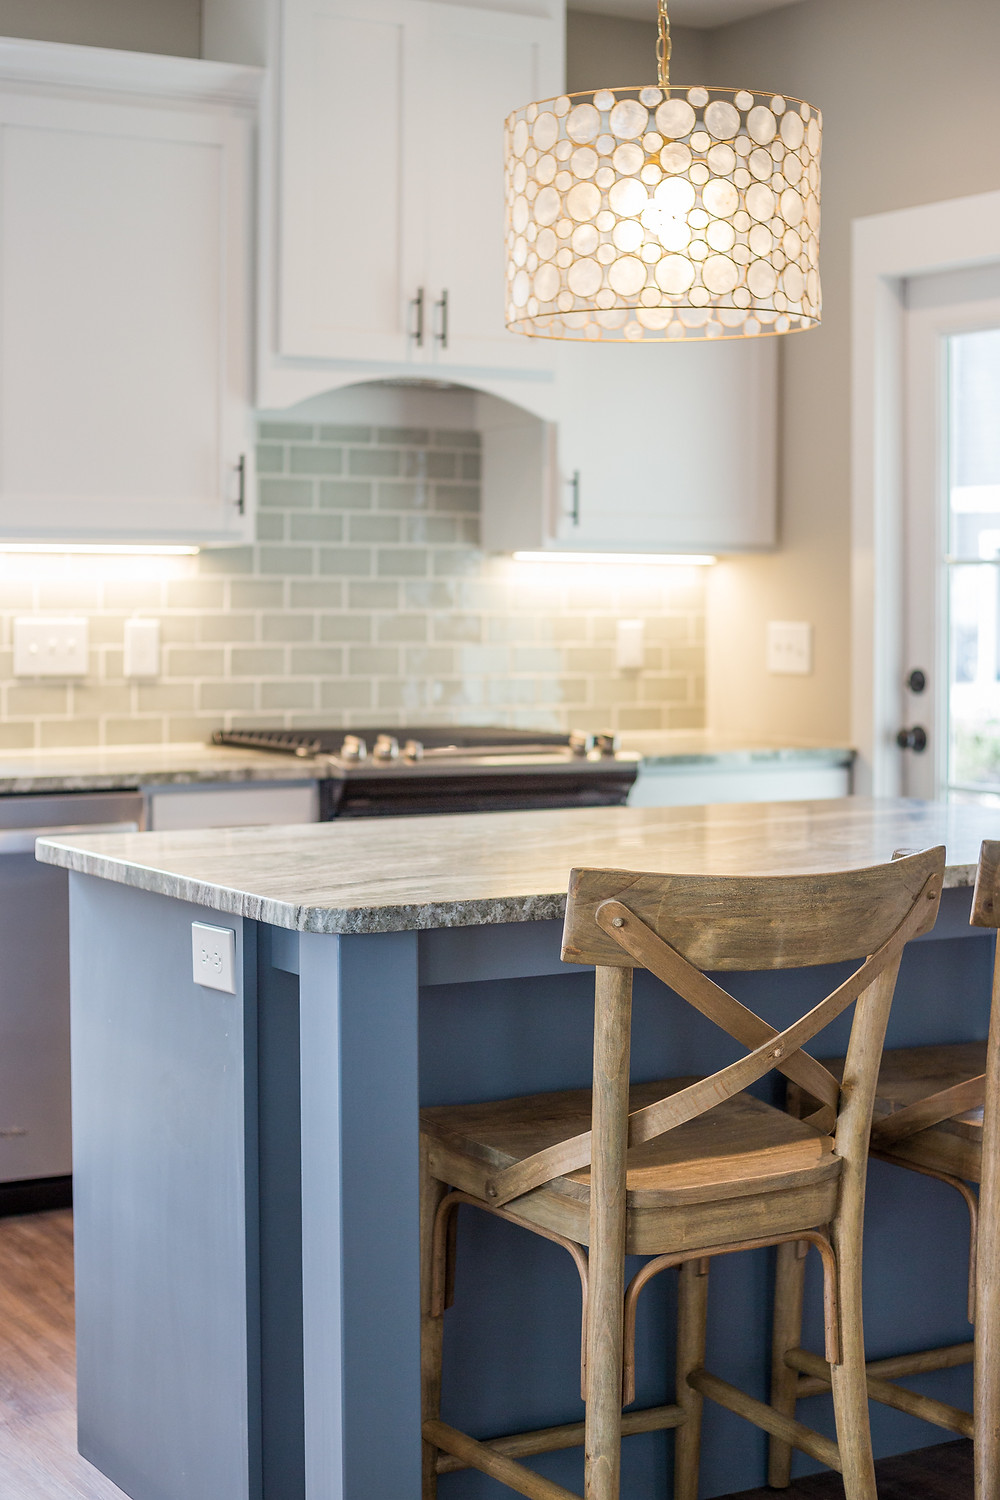 Wooden Kitchen barstool at eat in kitchen. Staged kitchen with cleared countertops